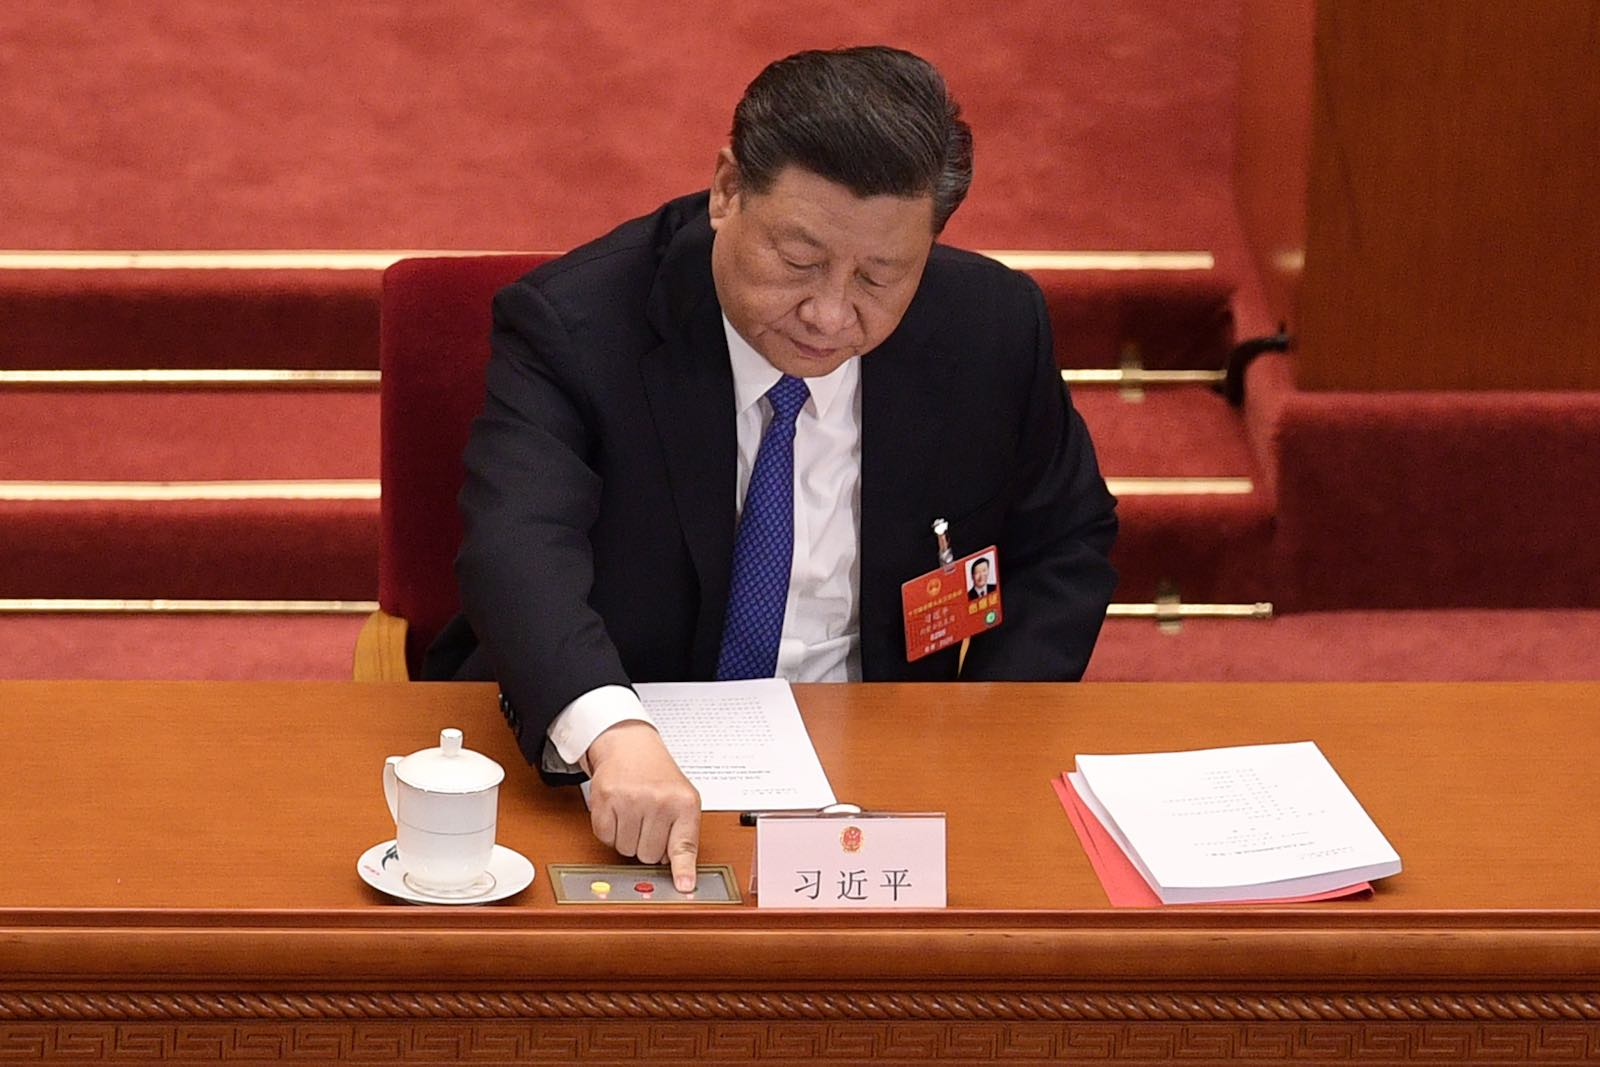 China's Xi Jinping votes on the security law for Hong Kong during the National People's Congress in Beijing in May (Nicolas Asfouri/AFP/Getty Images)